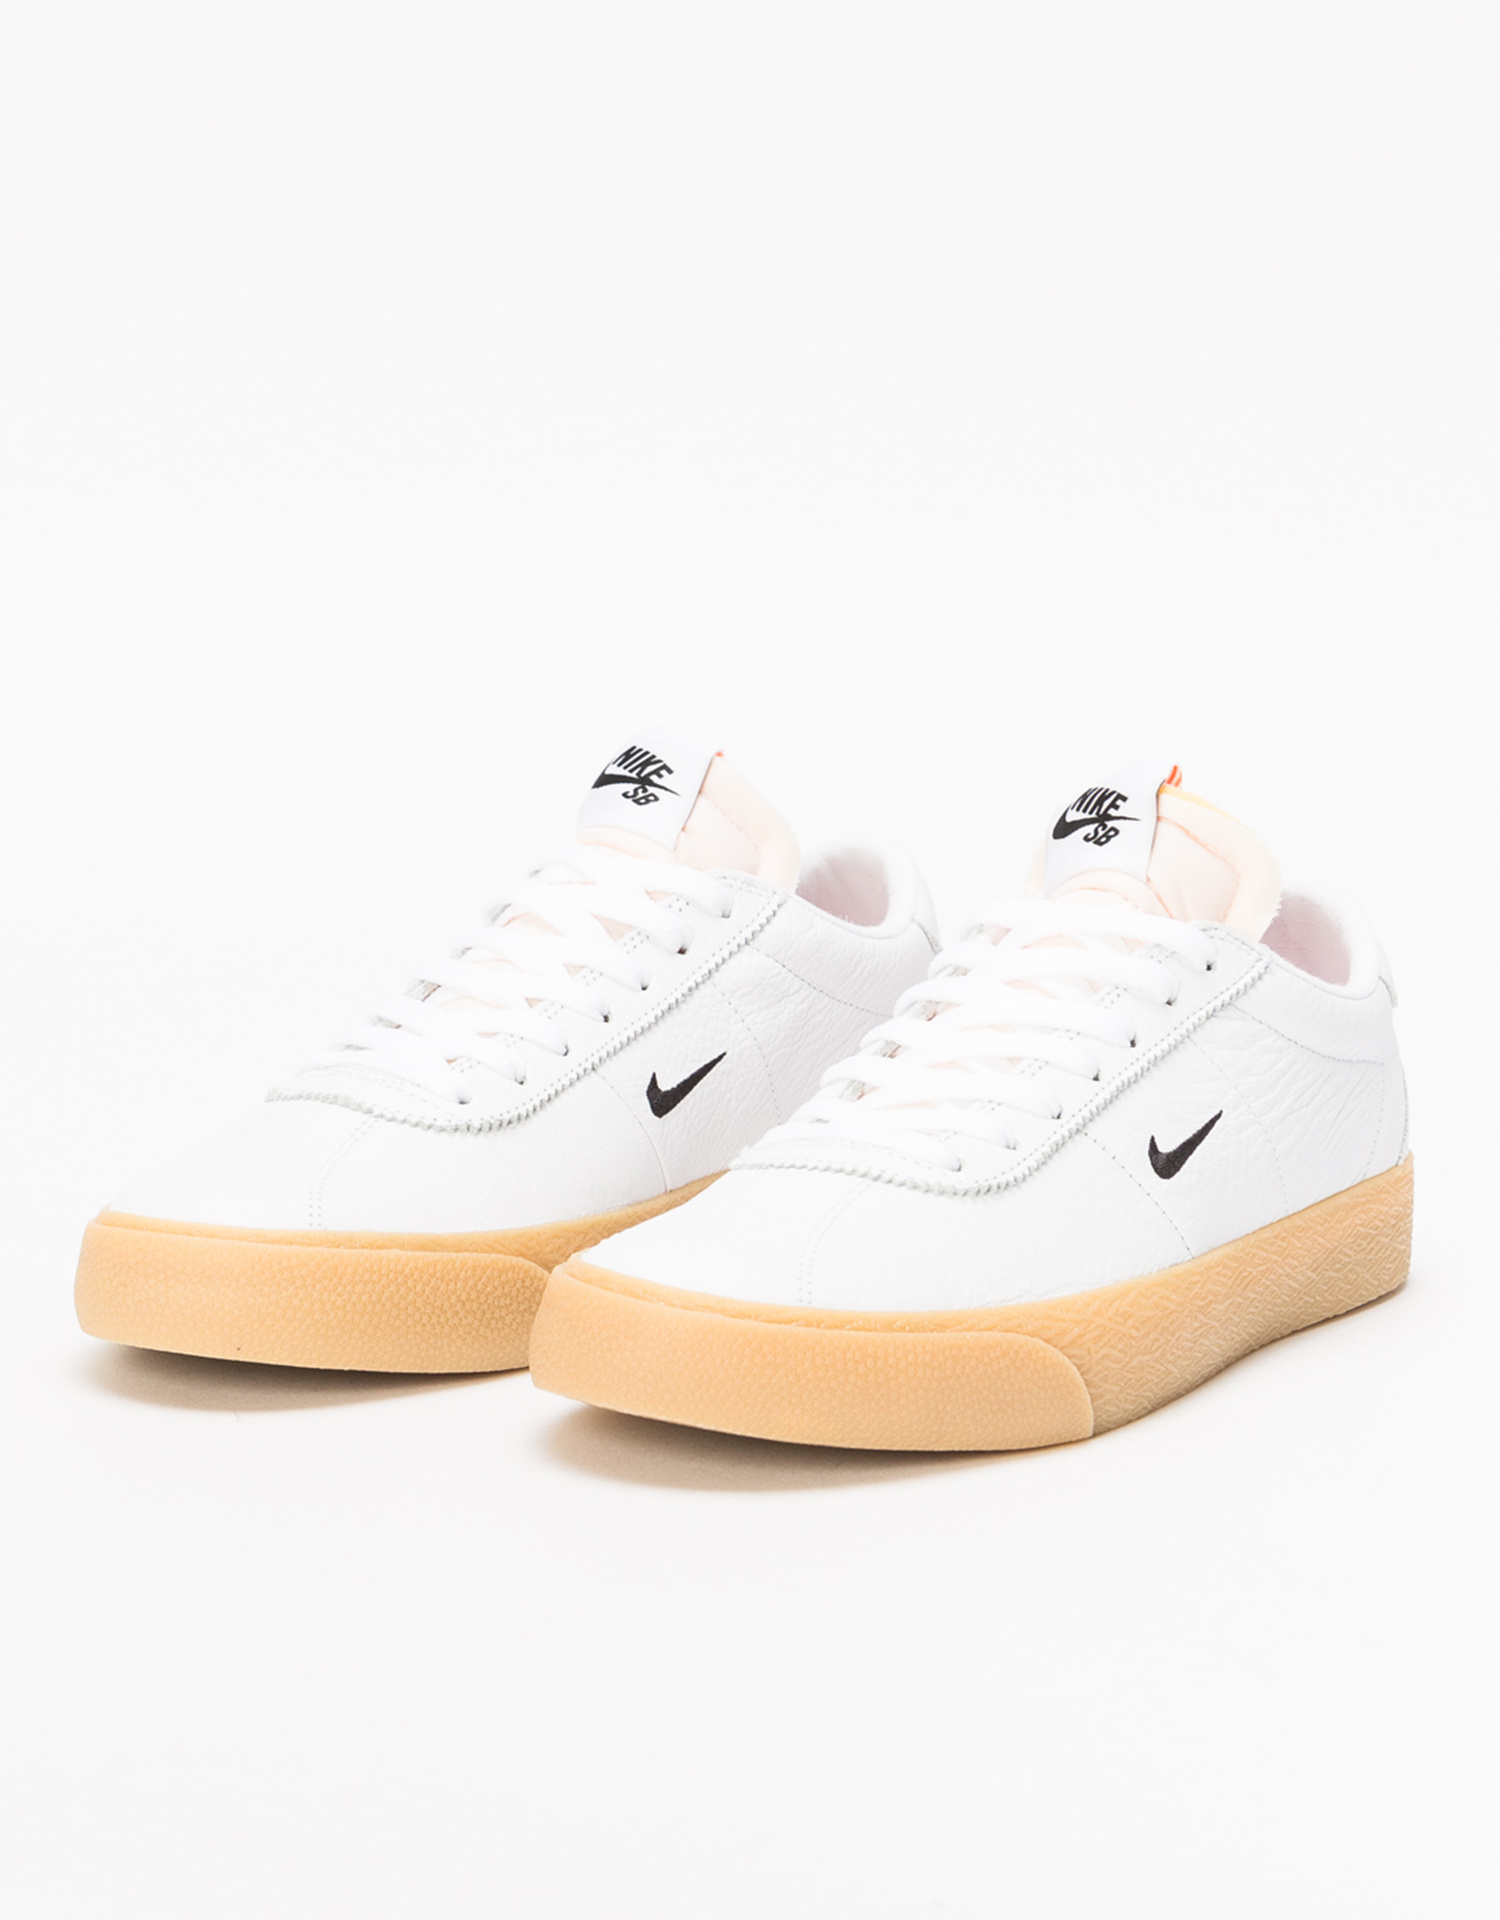 best website a80b7 db59e Nike SB Zoom Bruin Iso Orange Label White Black-Safety Orange - Lockwood  Skateshop